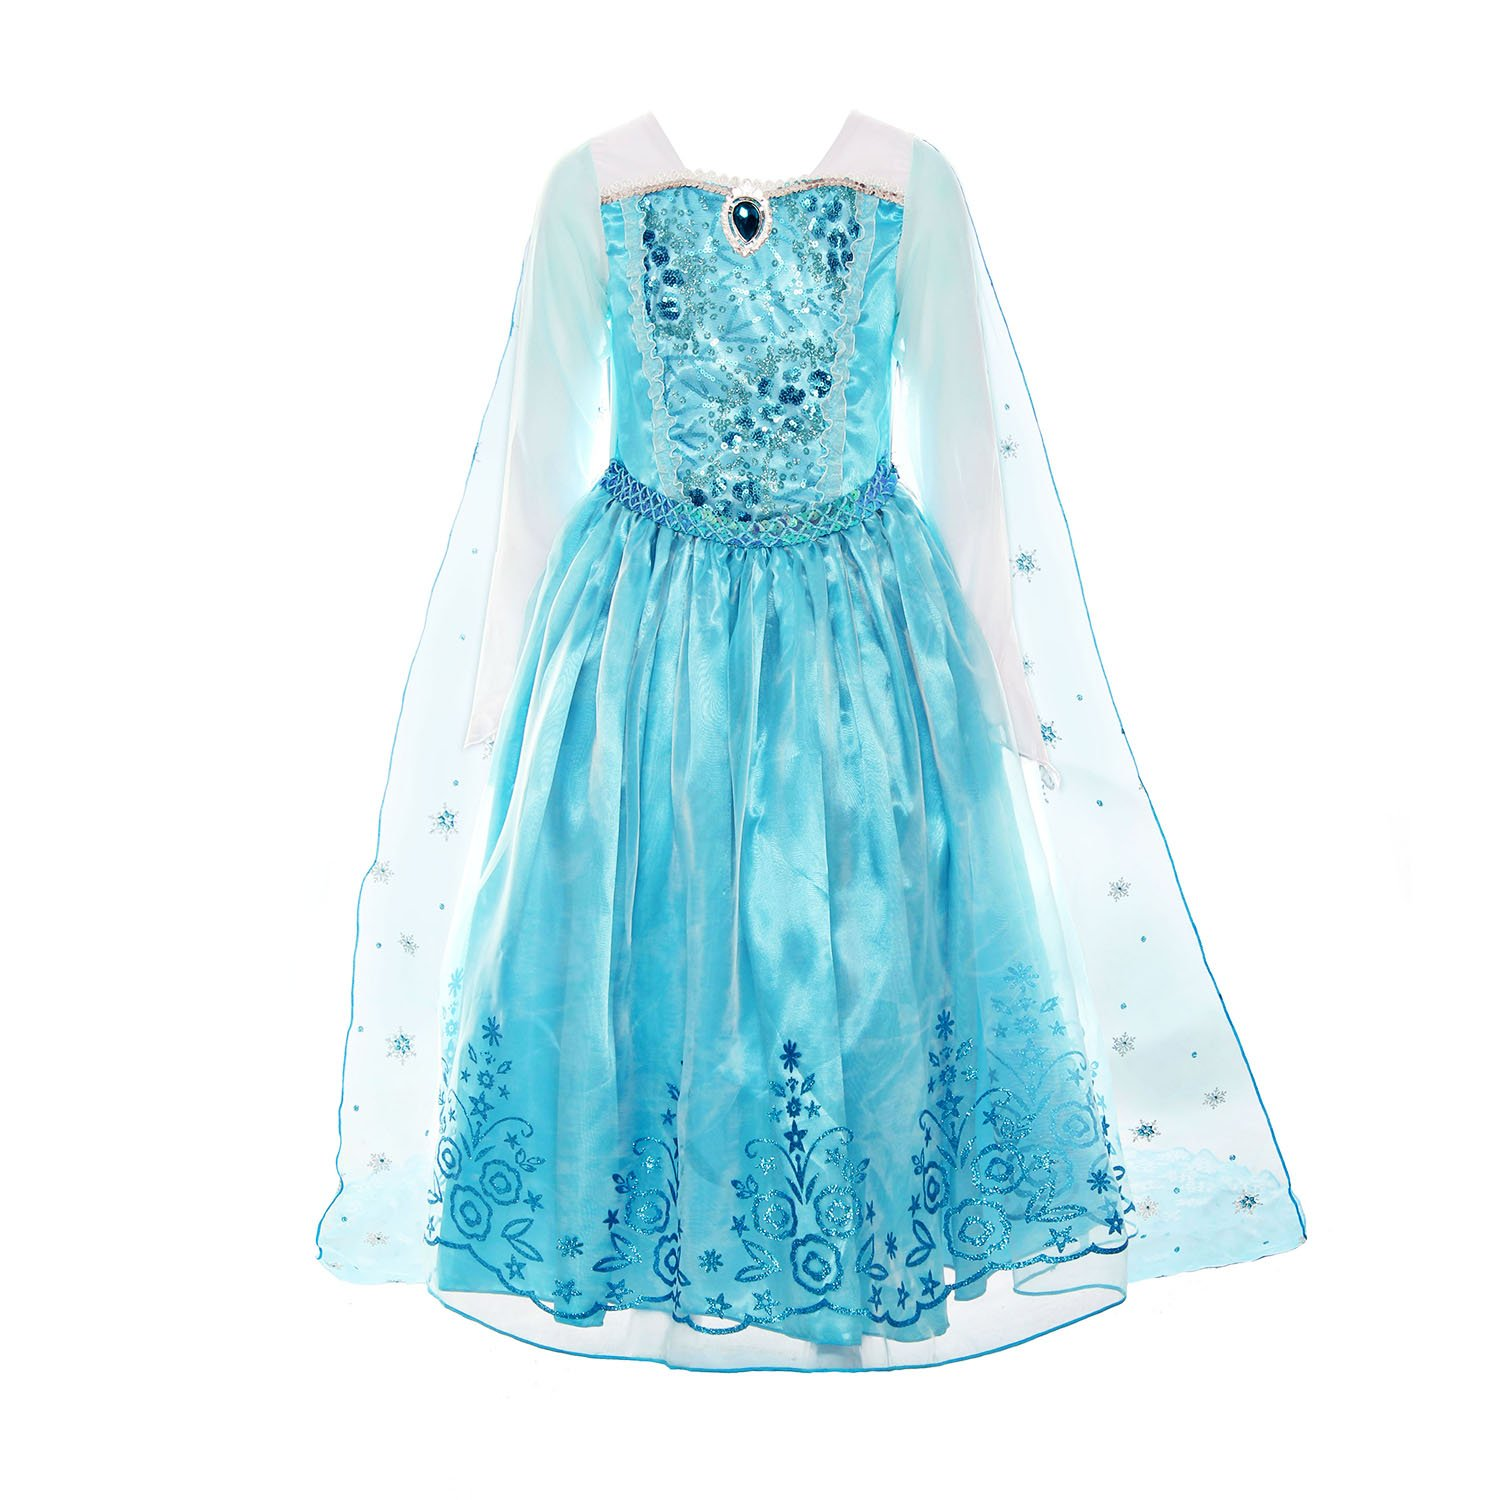 ReliBeauty Girls Sequin Princess Costume Long Sleeve Dress up RB-G9218